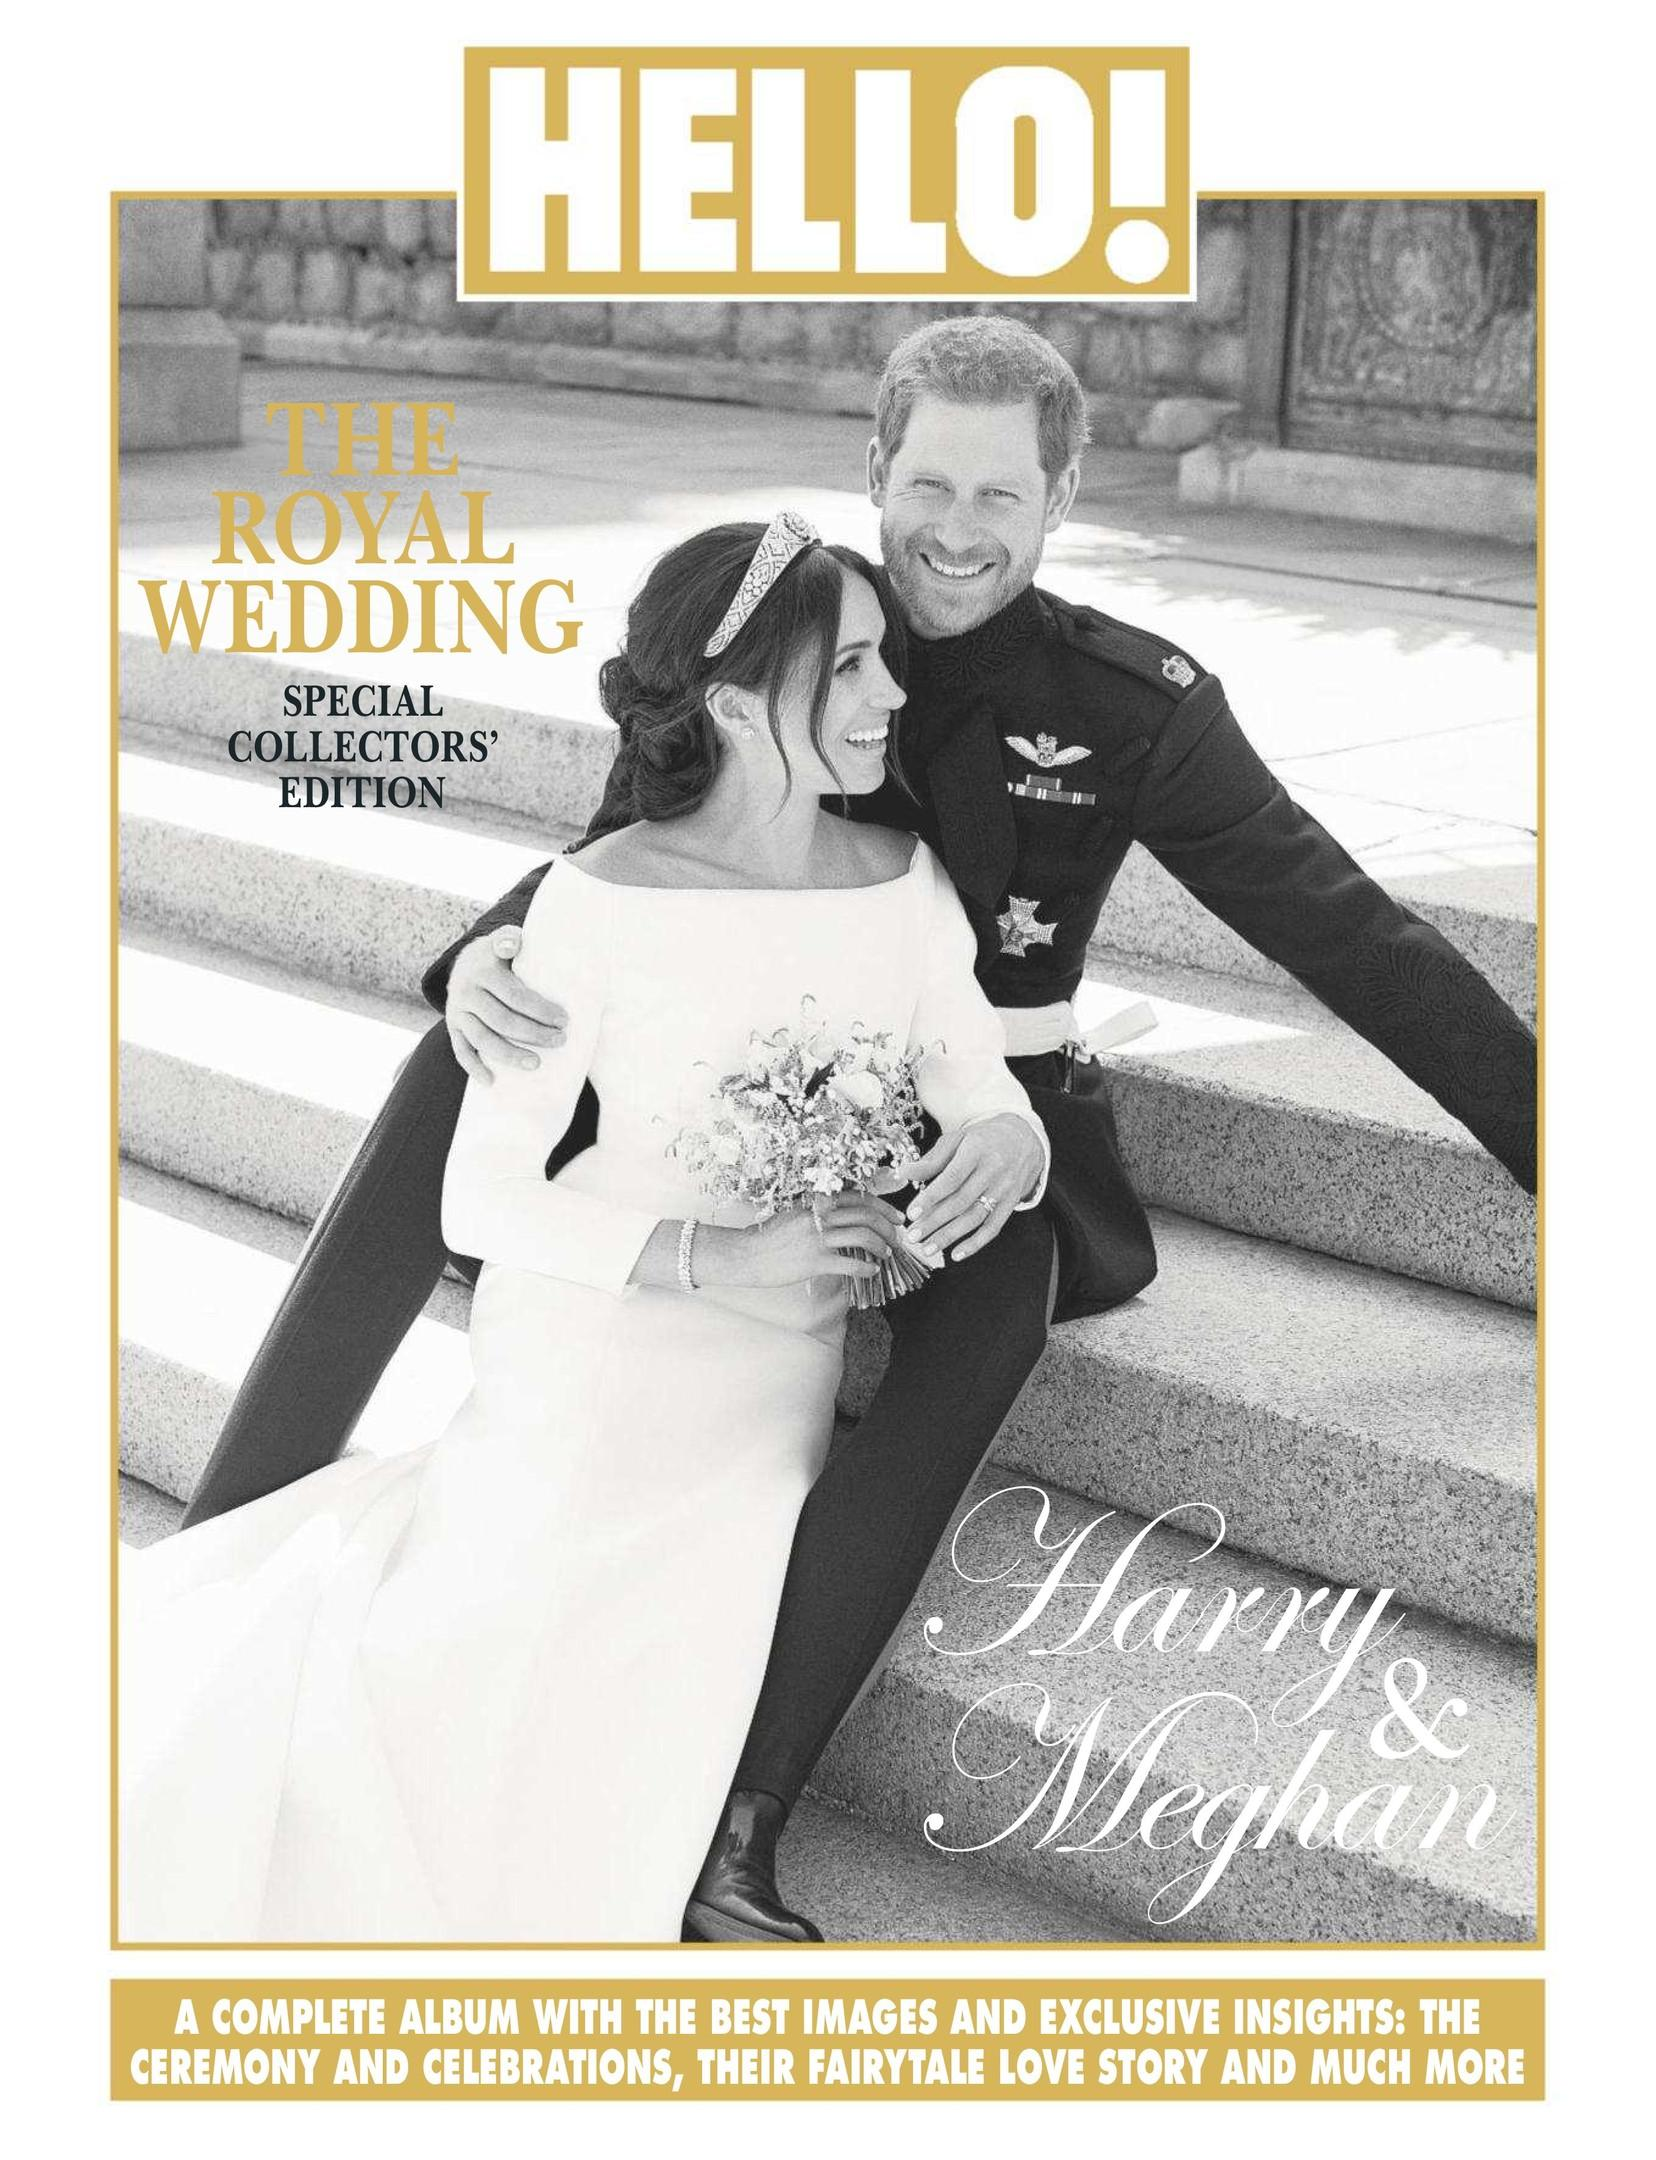 Wedding bride magazines 2017 pdf download free the royal wedding special collectors edition harry and meghan june 2018 fandeluxe Images